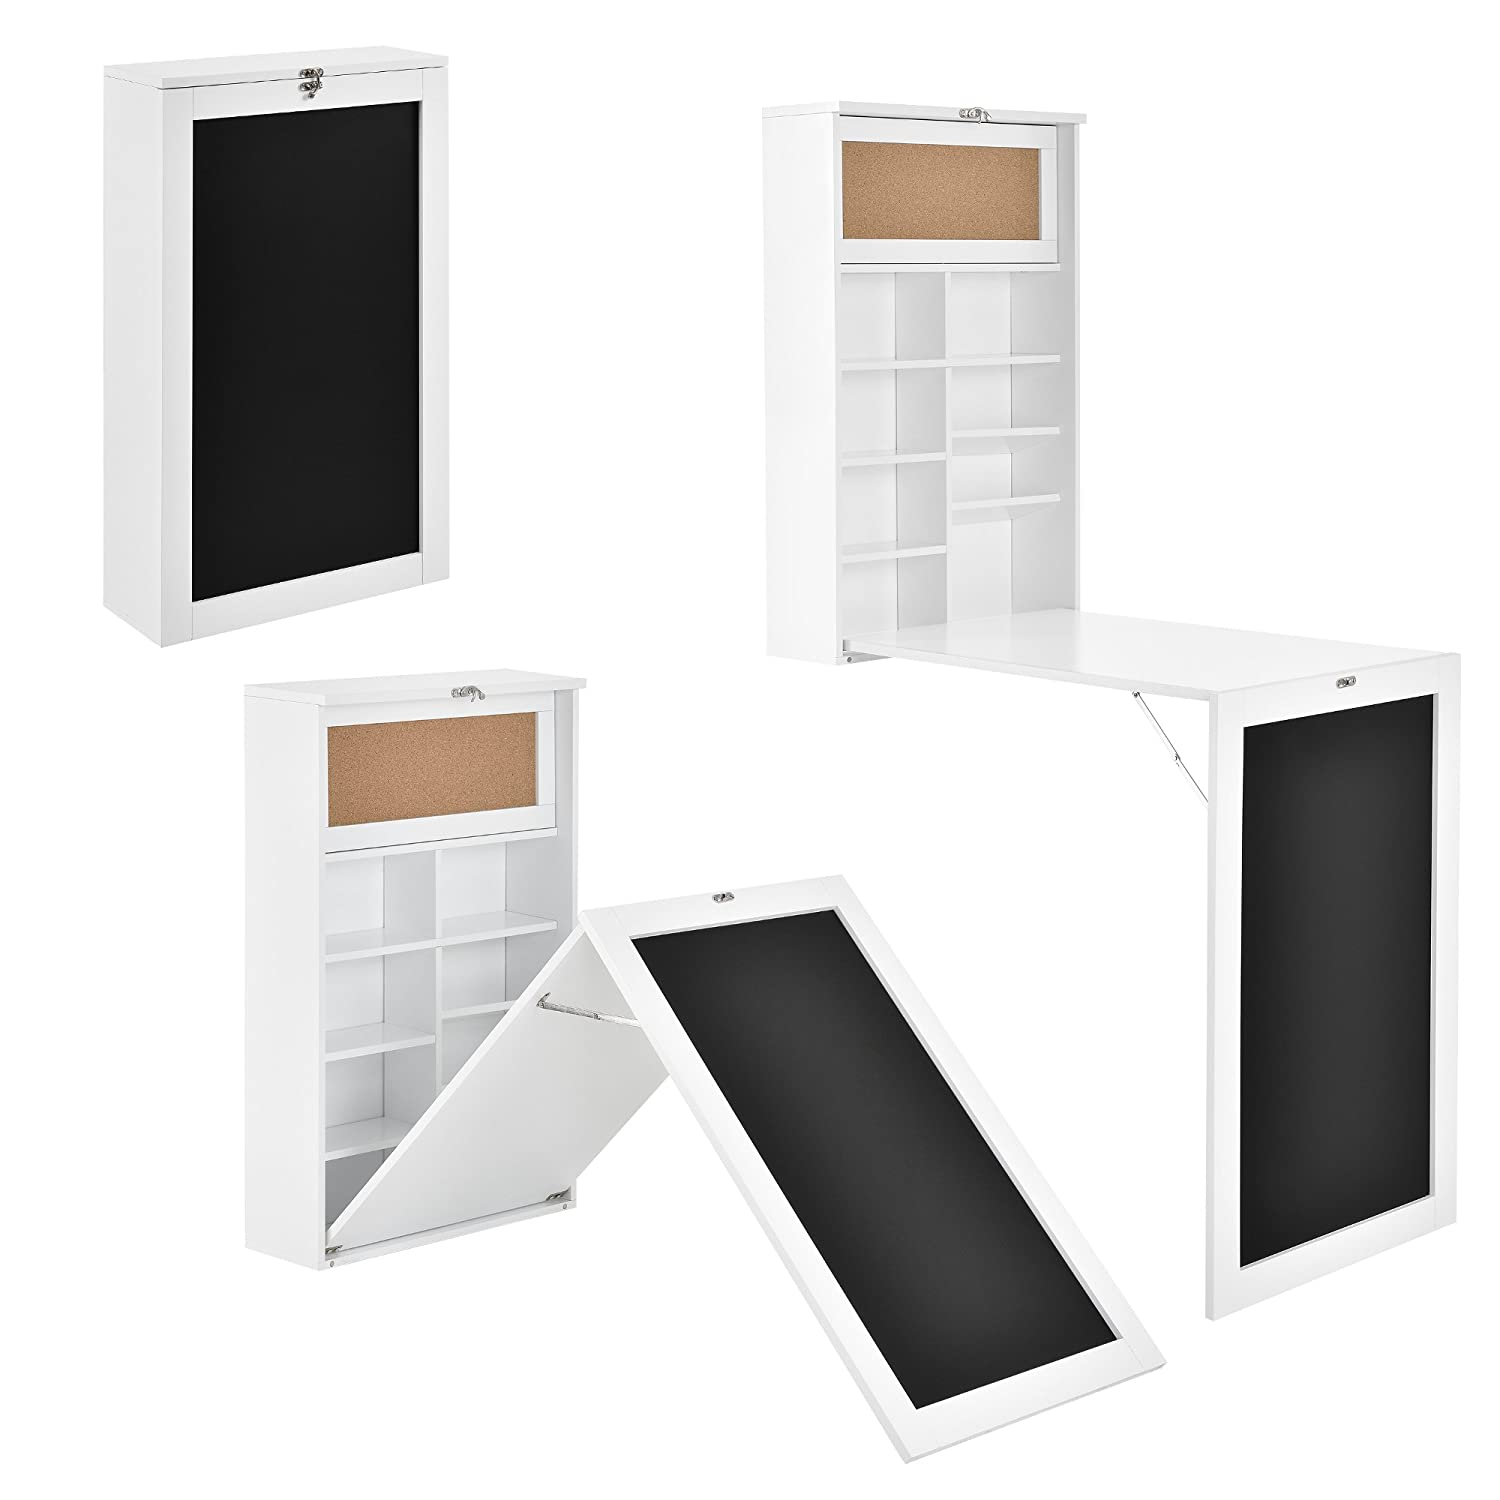 156 x 50 x 91.5 cm en.casa white Compact wall integrated desk office computer workstation table